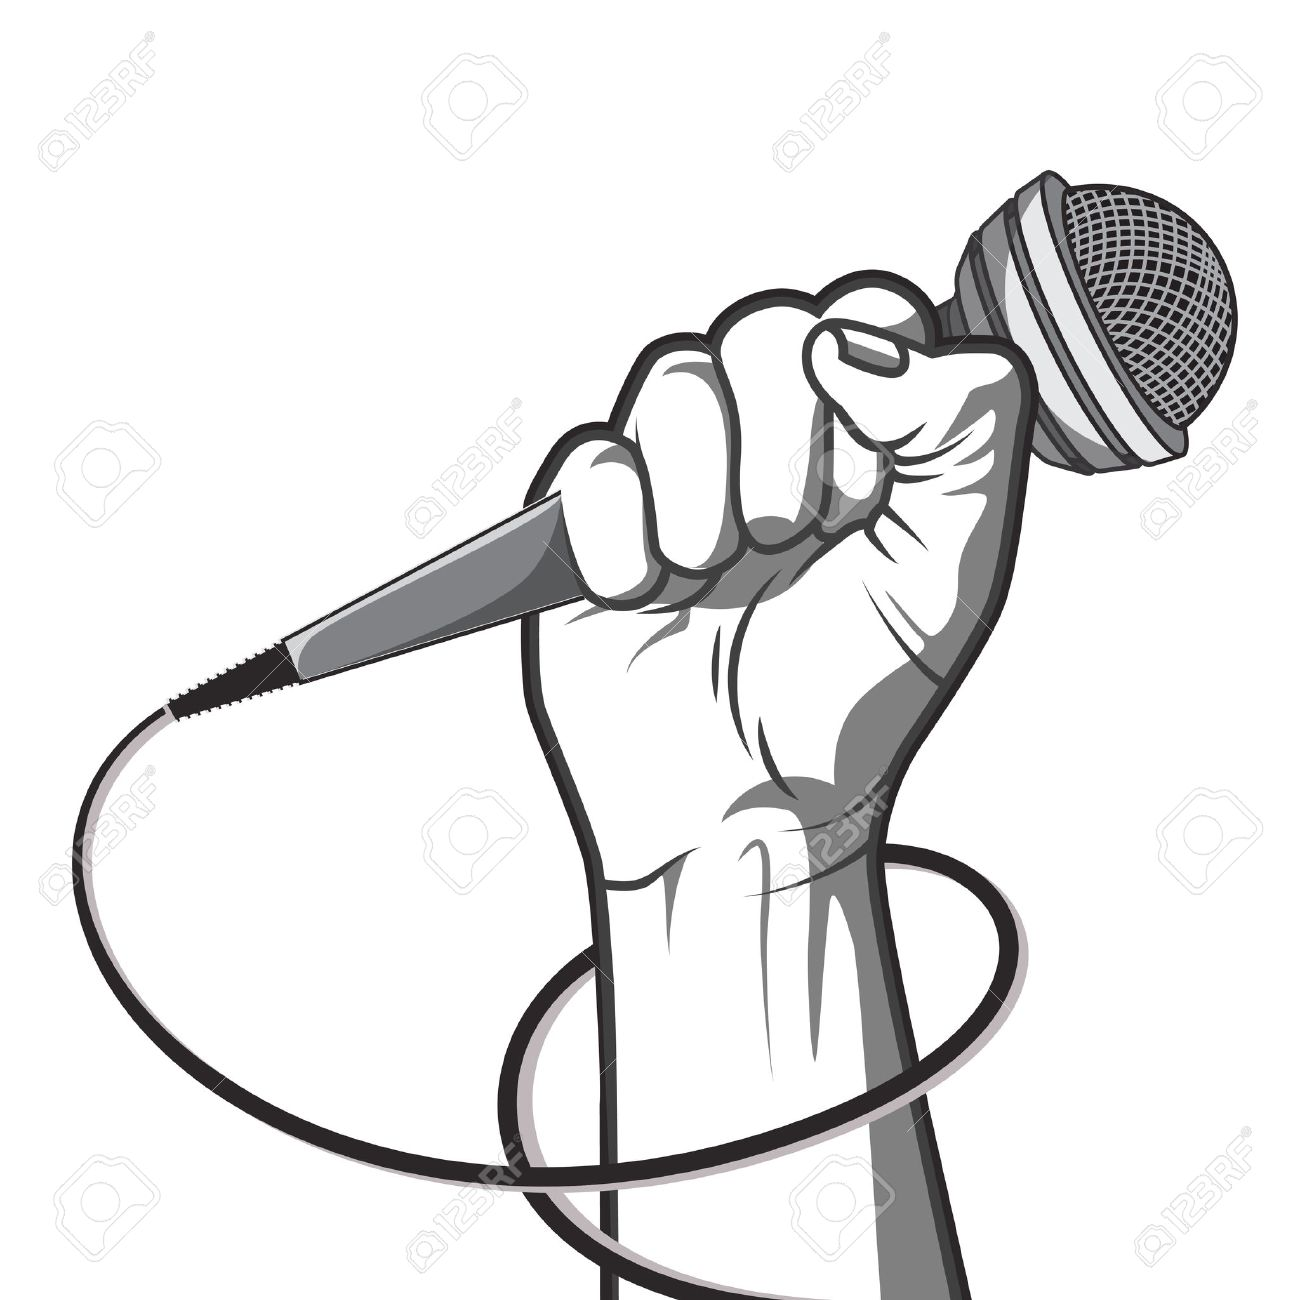 hand holding a microphone in a fist. illustration in black and white style. - 54582148